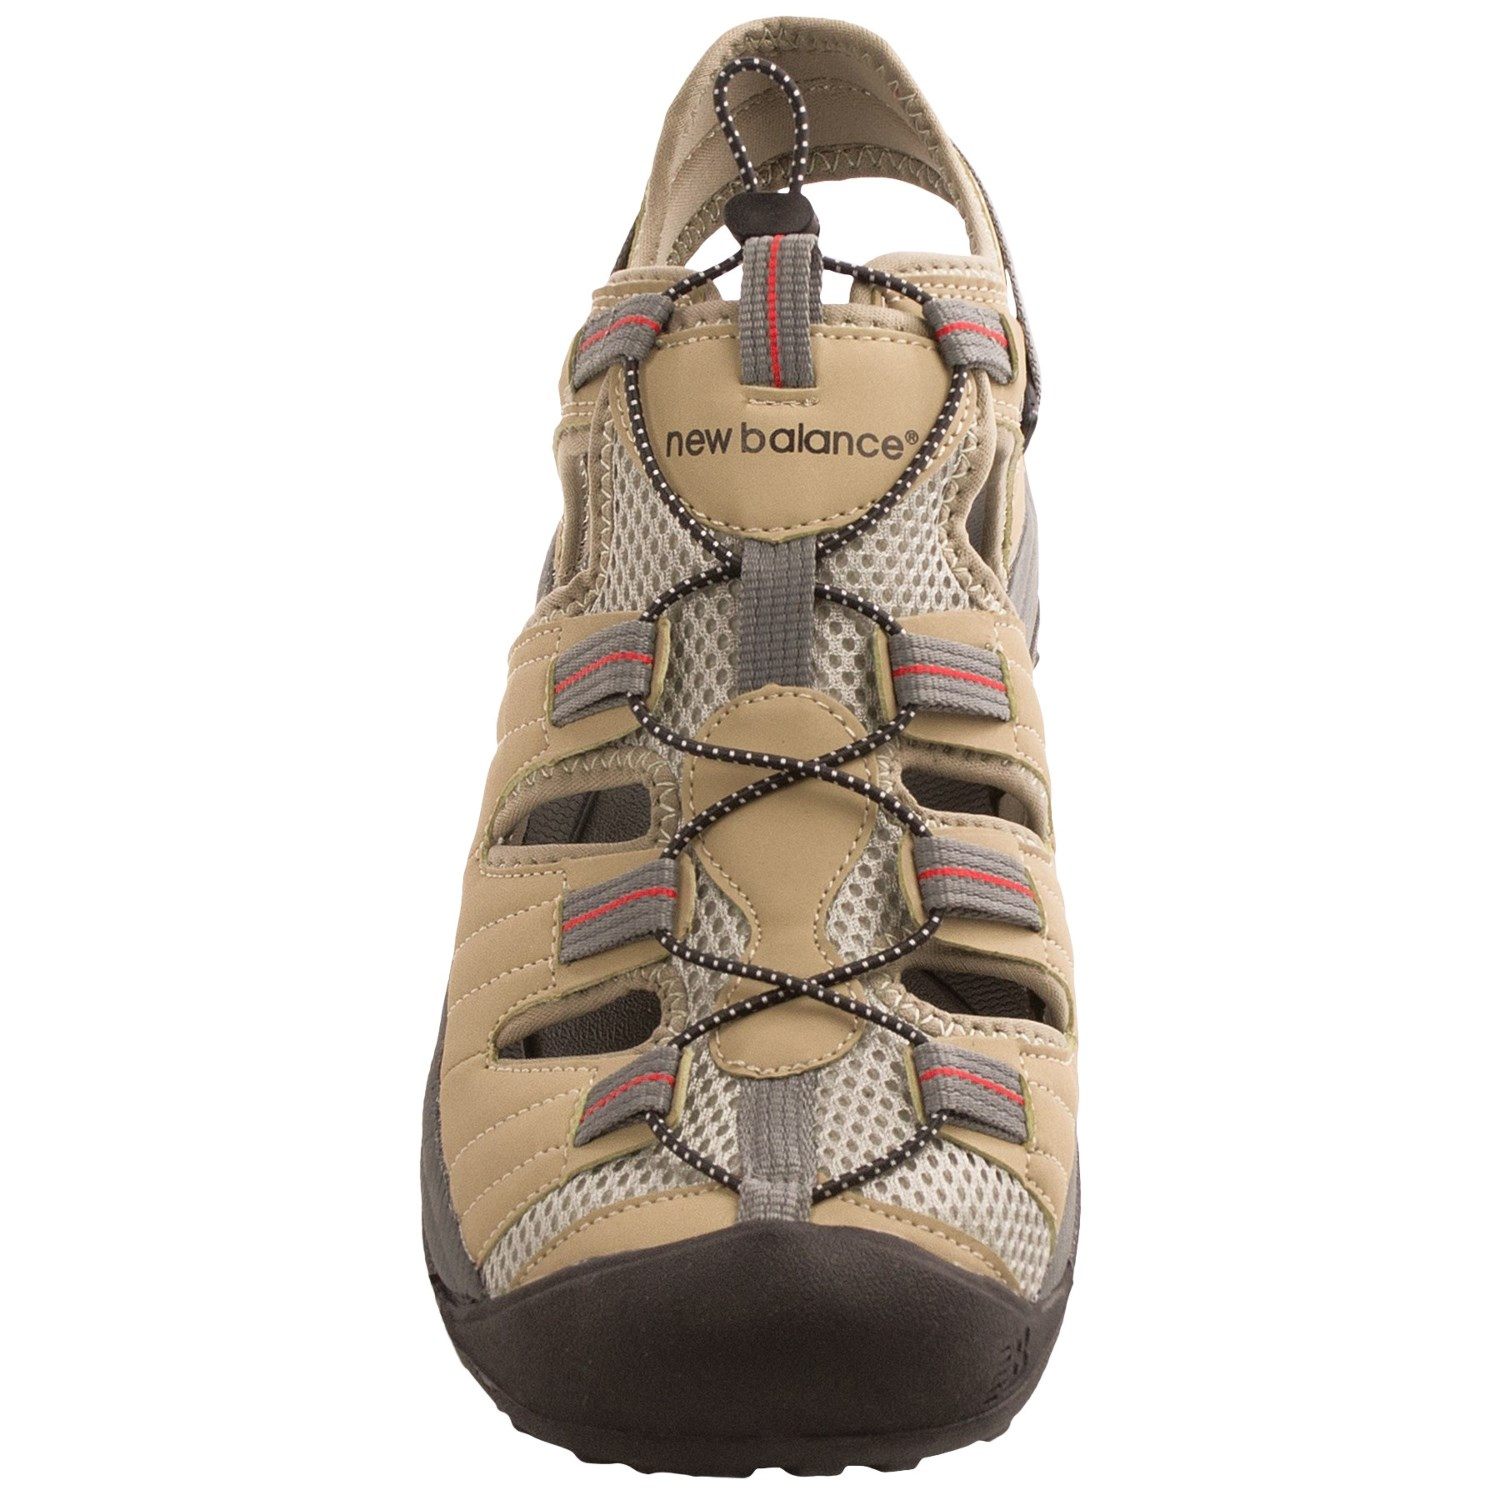 New Balance Appalachian Sport Sandals For Men 8851a